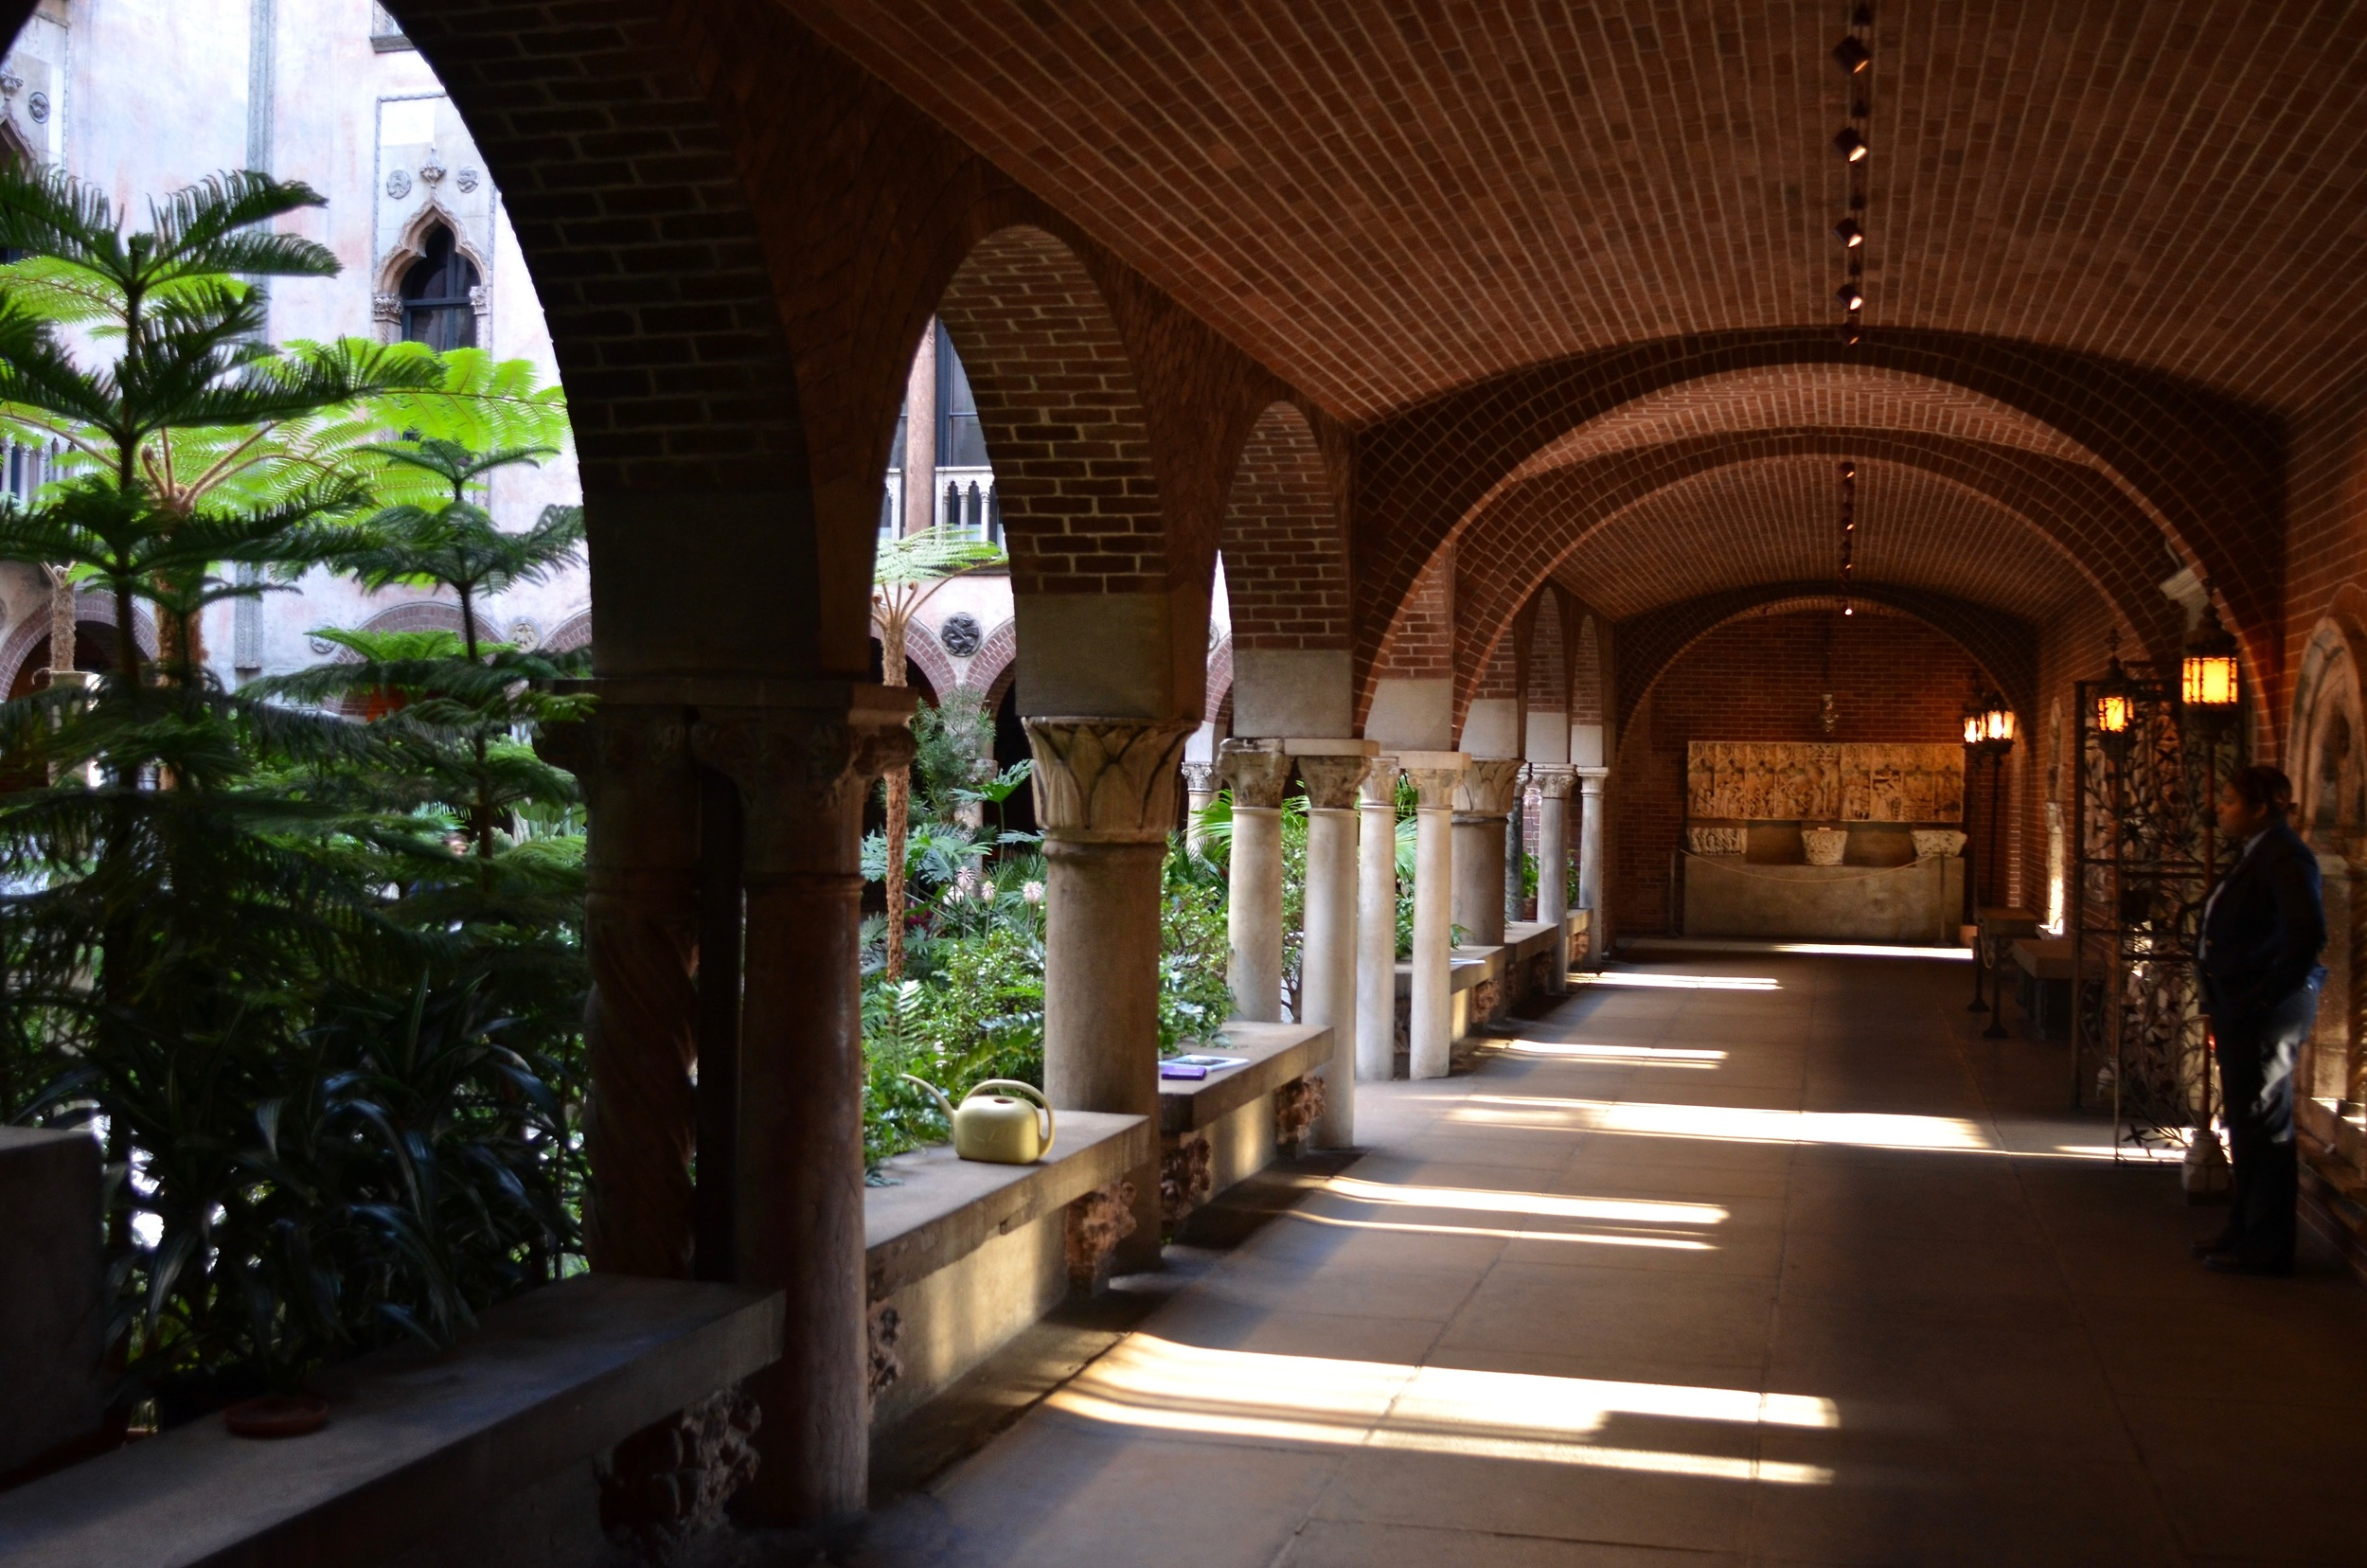 Carrasquillo tells me this is one of her favourite parts of the museum: the contrast between the dark, cool brick hall that rings the main garden, and the vivid, airy, warm garden.